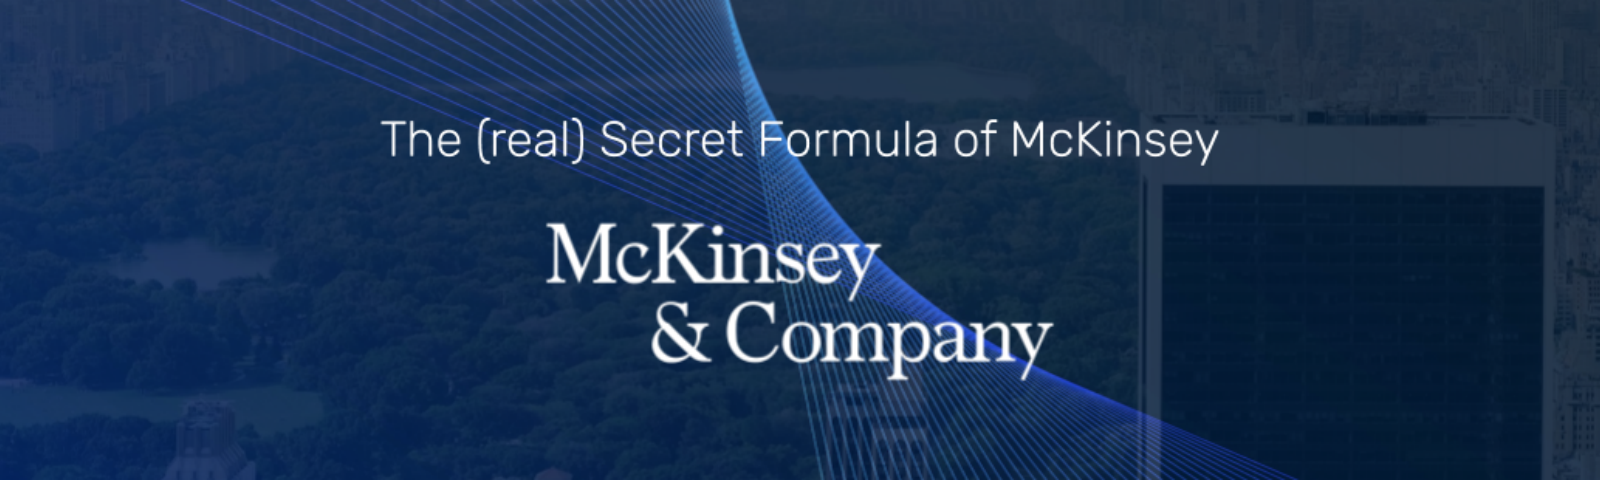 The (real) Secret Formula of McKinsey. What I thought I would learn at McKinsey, and what I actually learned